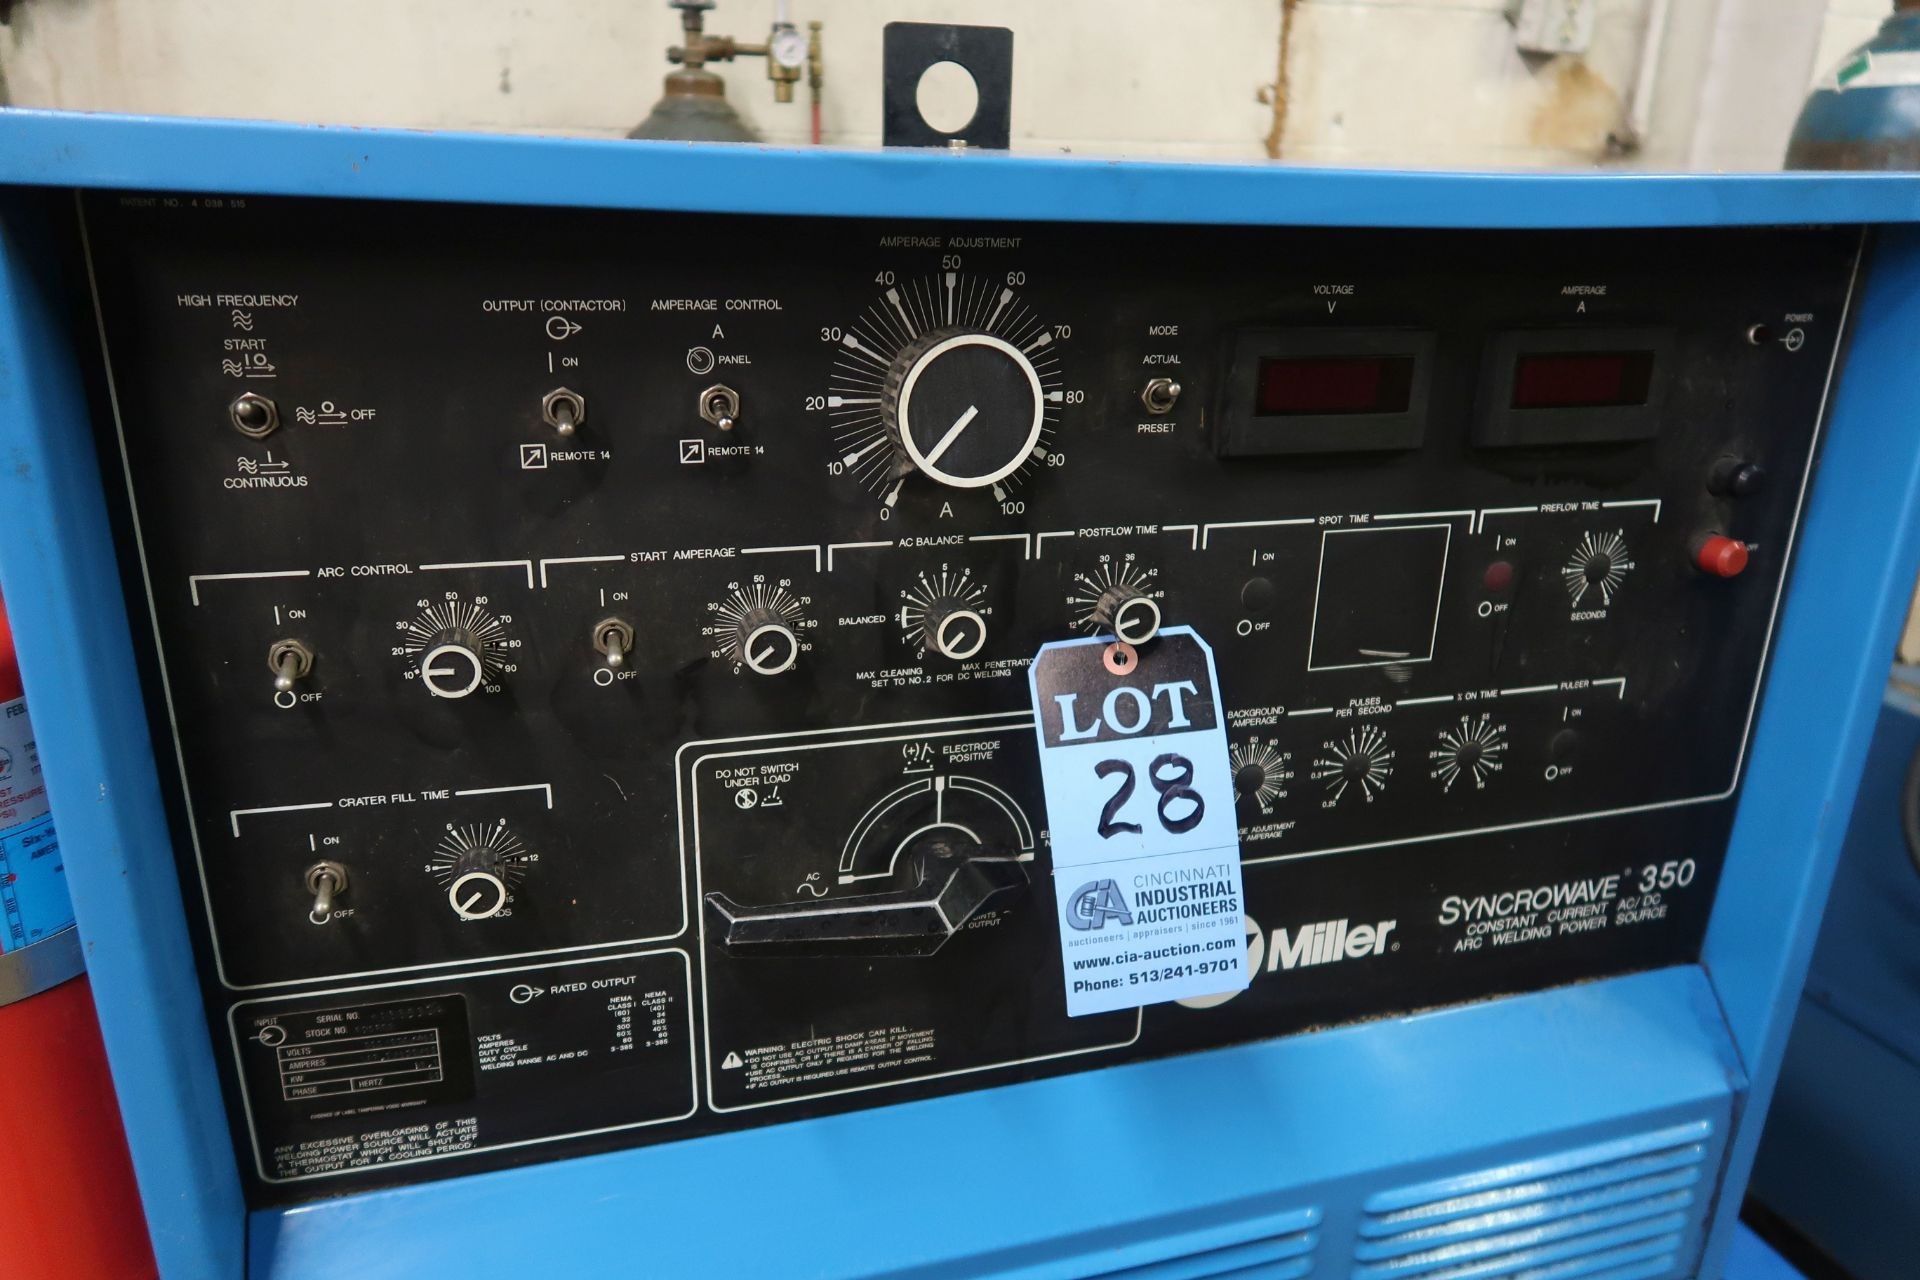 350 AMP MILLER SYNCROWAVE 350 CONSTANT CURRENT AC/DC ARC WELDING POWER SOURCE; S/N KA885504, WITH - Image 2 of 5